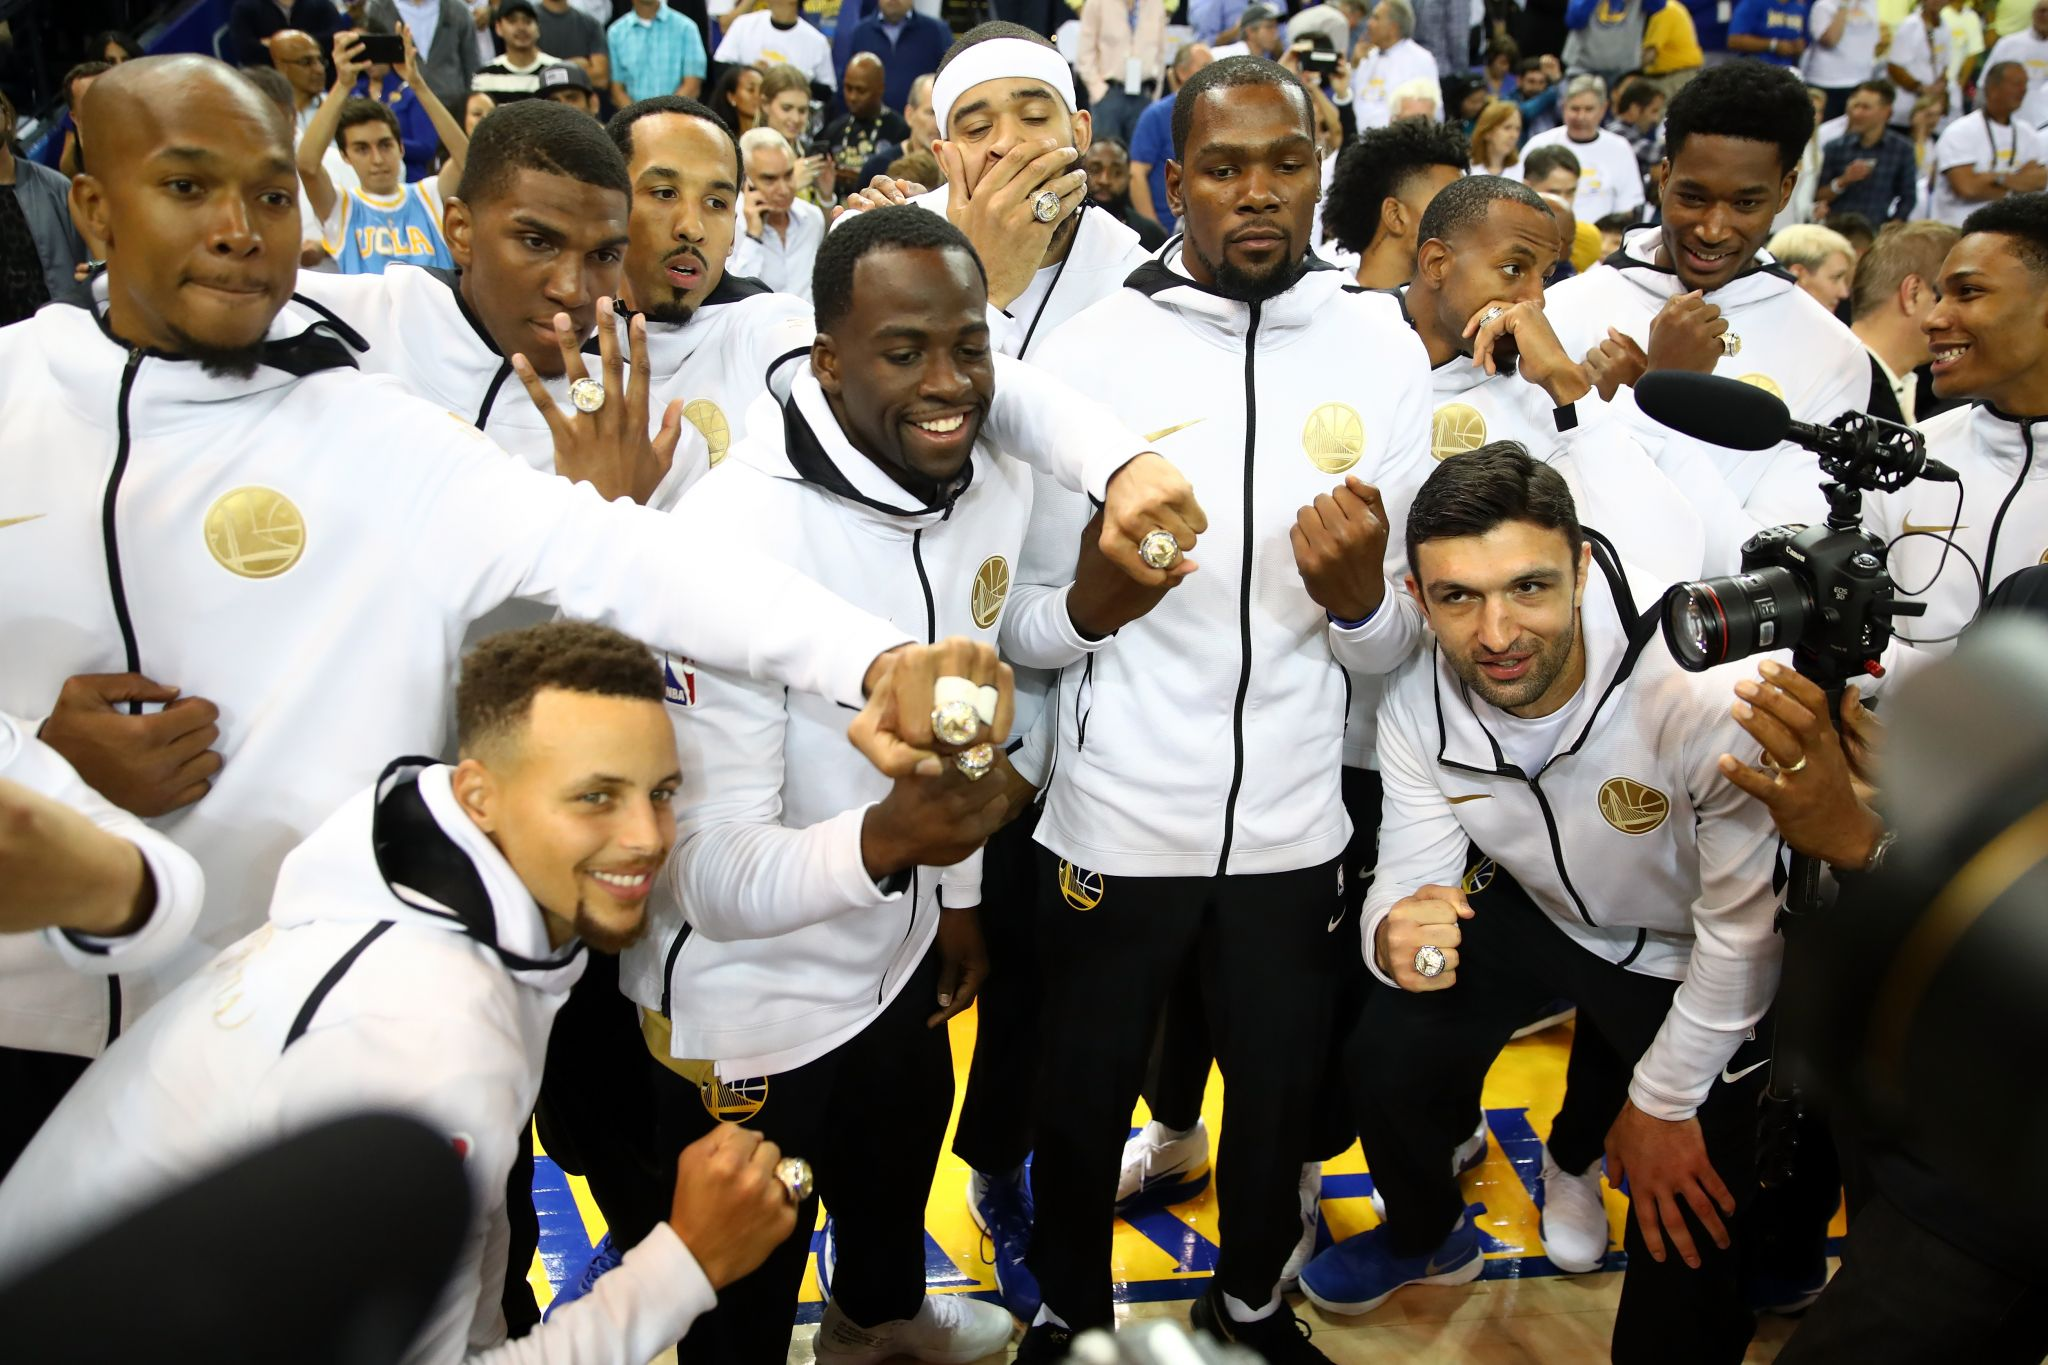 With White House invite 'withdrawn,' Warriors plan to visit D.C. kids